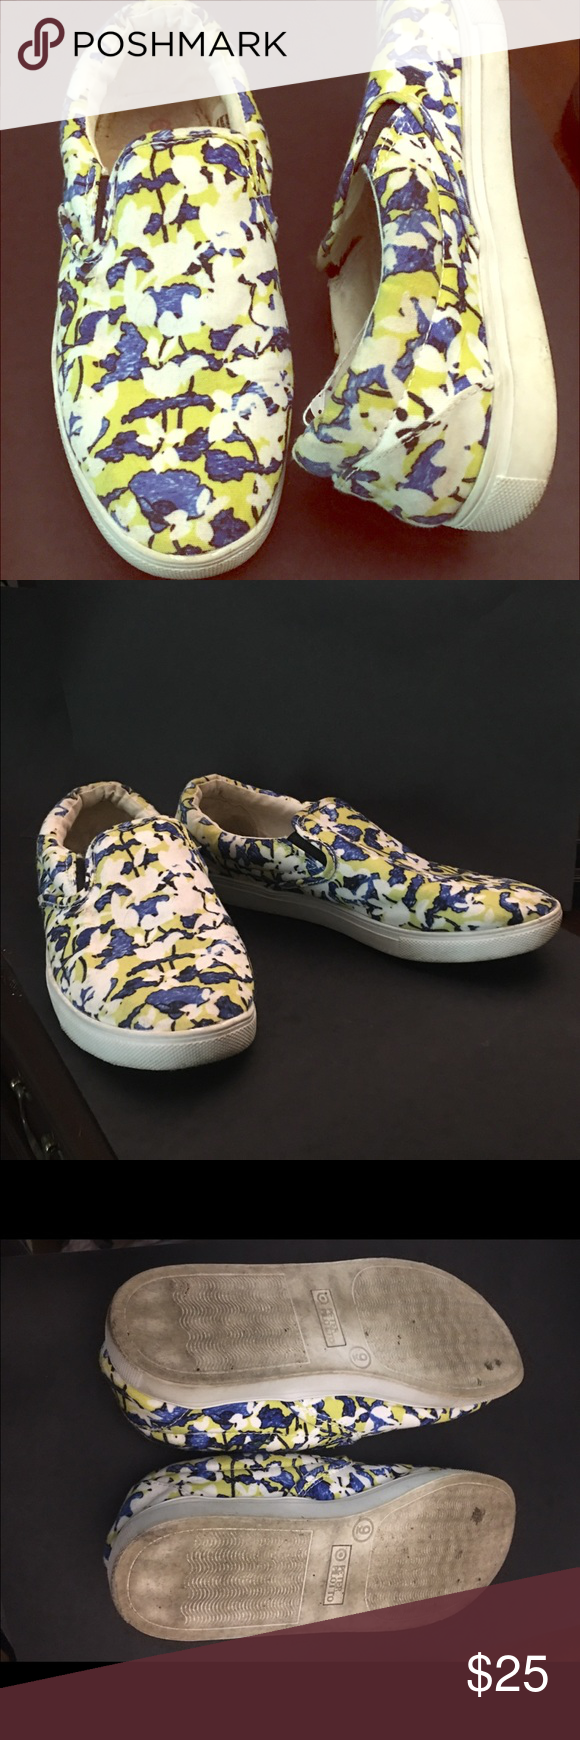 Peter Pilitto blue white floral cloth flats sz 9 Peter Pilitto blue white floral cloth flats  gently worn size 9 Anthropologie Shoes Sneakers